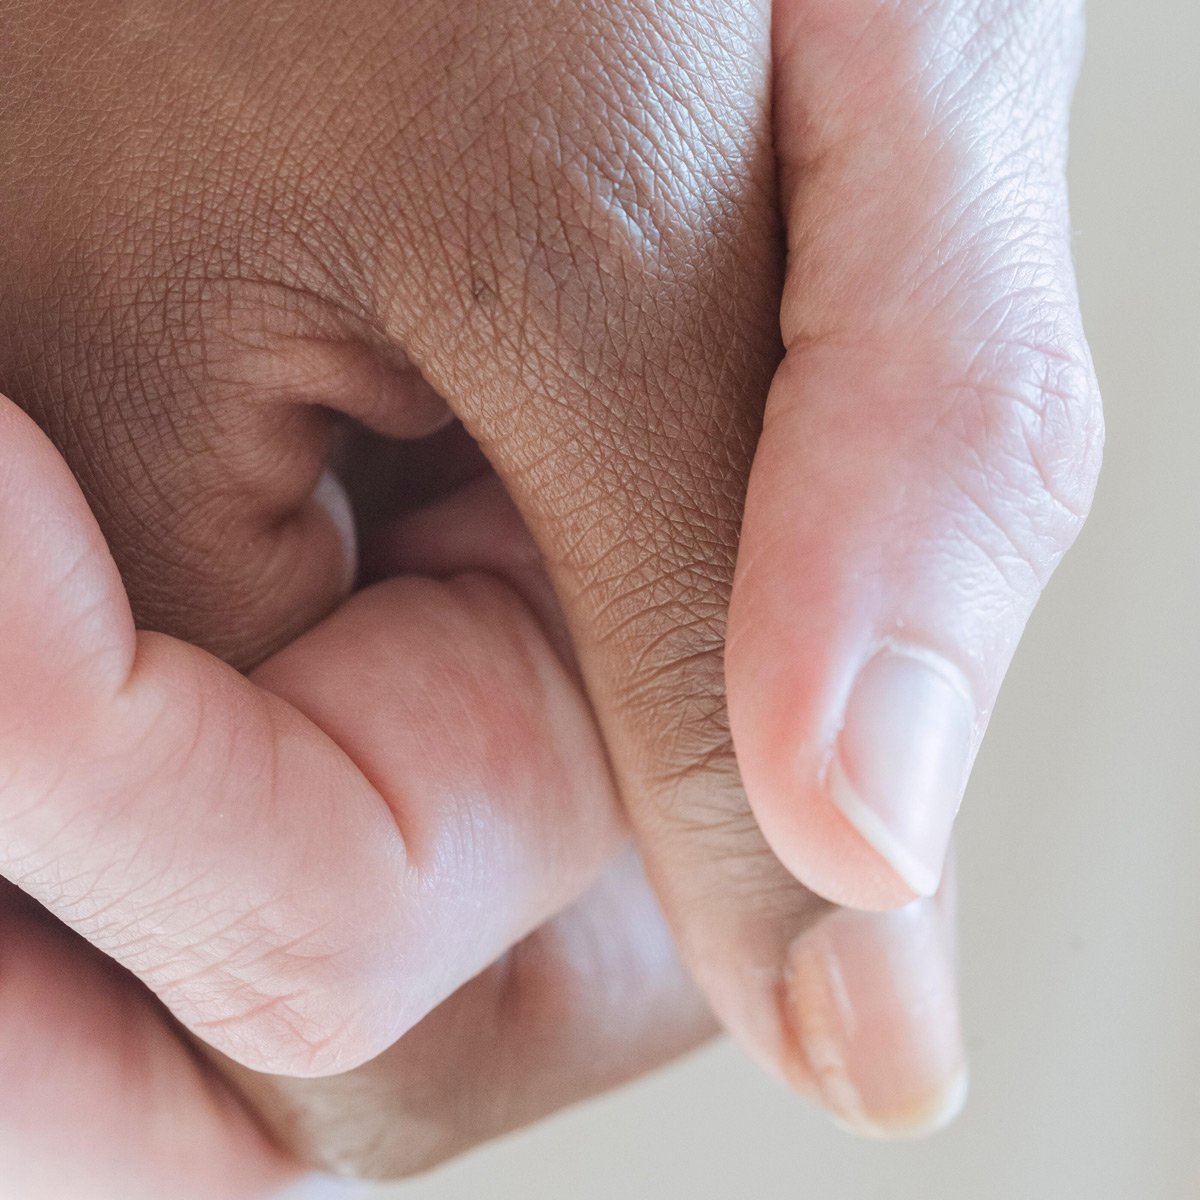 An image of a couple holding hands